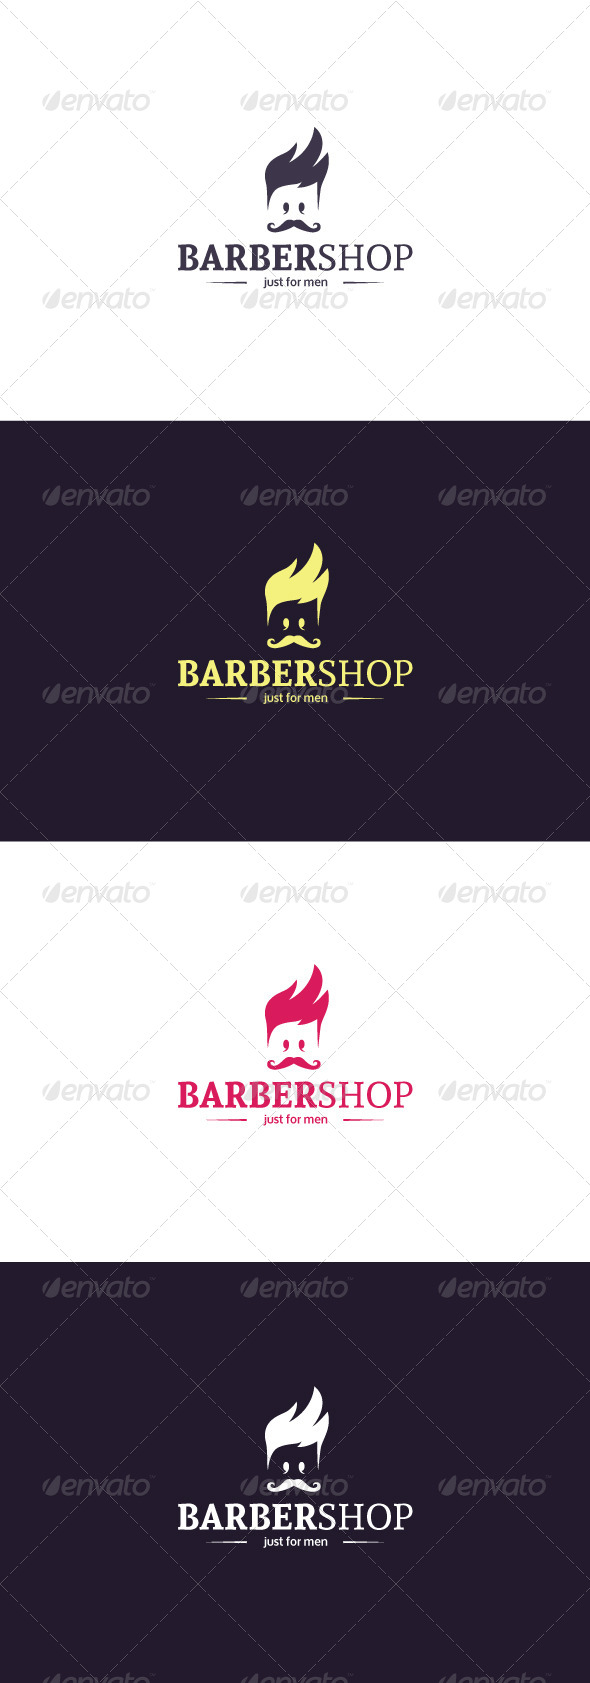 GraphicRiver Barber Shop Logo 8249811